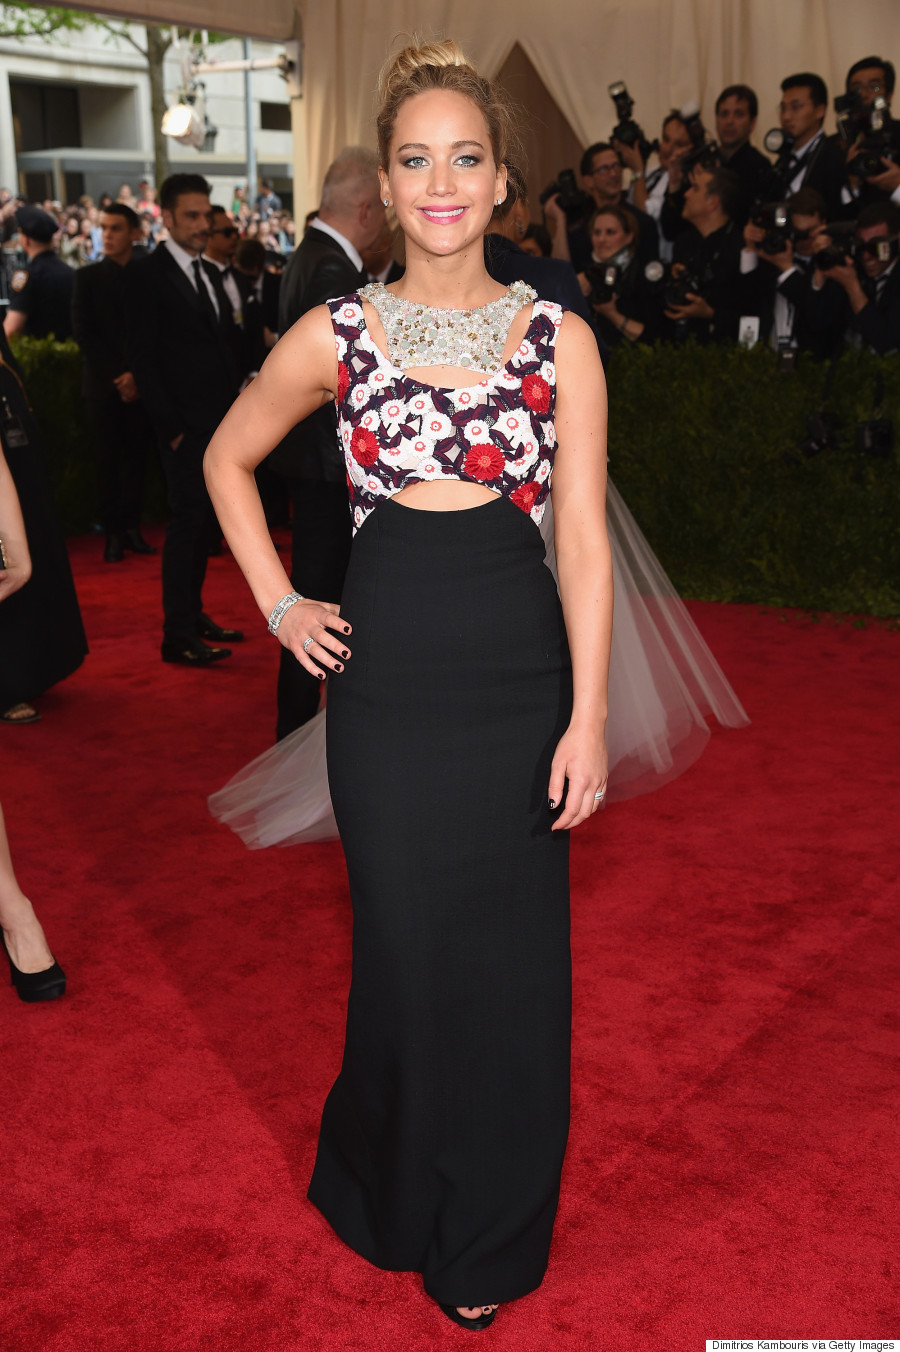 Jennifer-Lawrence-in-Christian-Dior-Couture-at-the-2015-MET-Gala